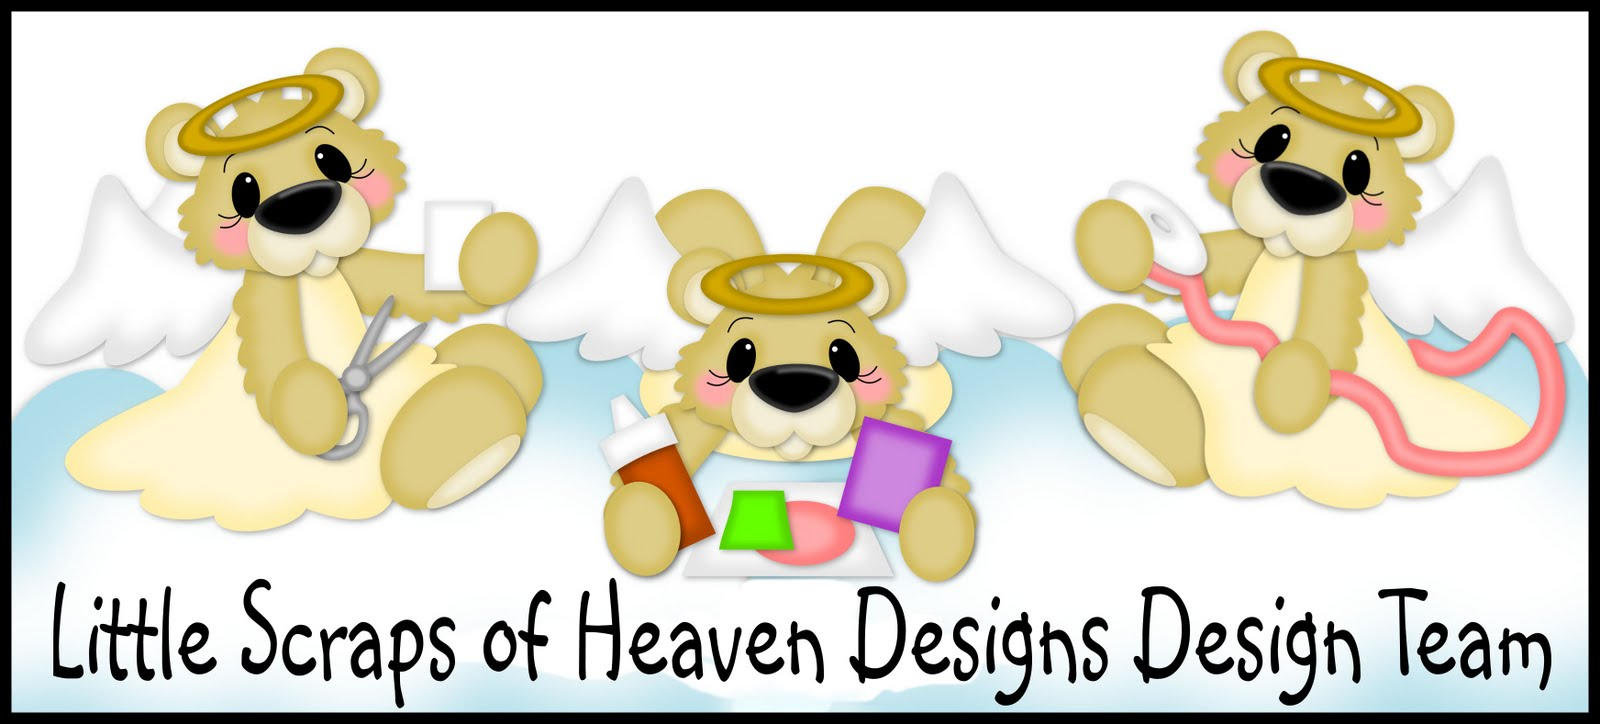 Litte Scraps of Heaven Designs